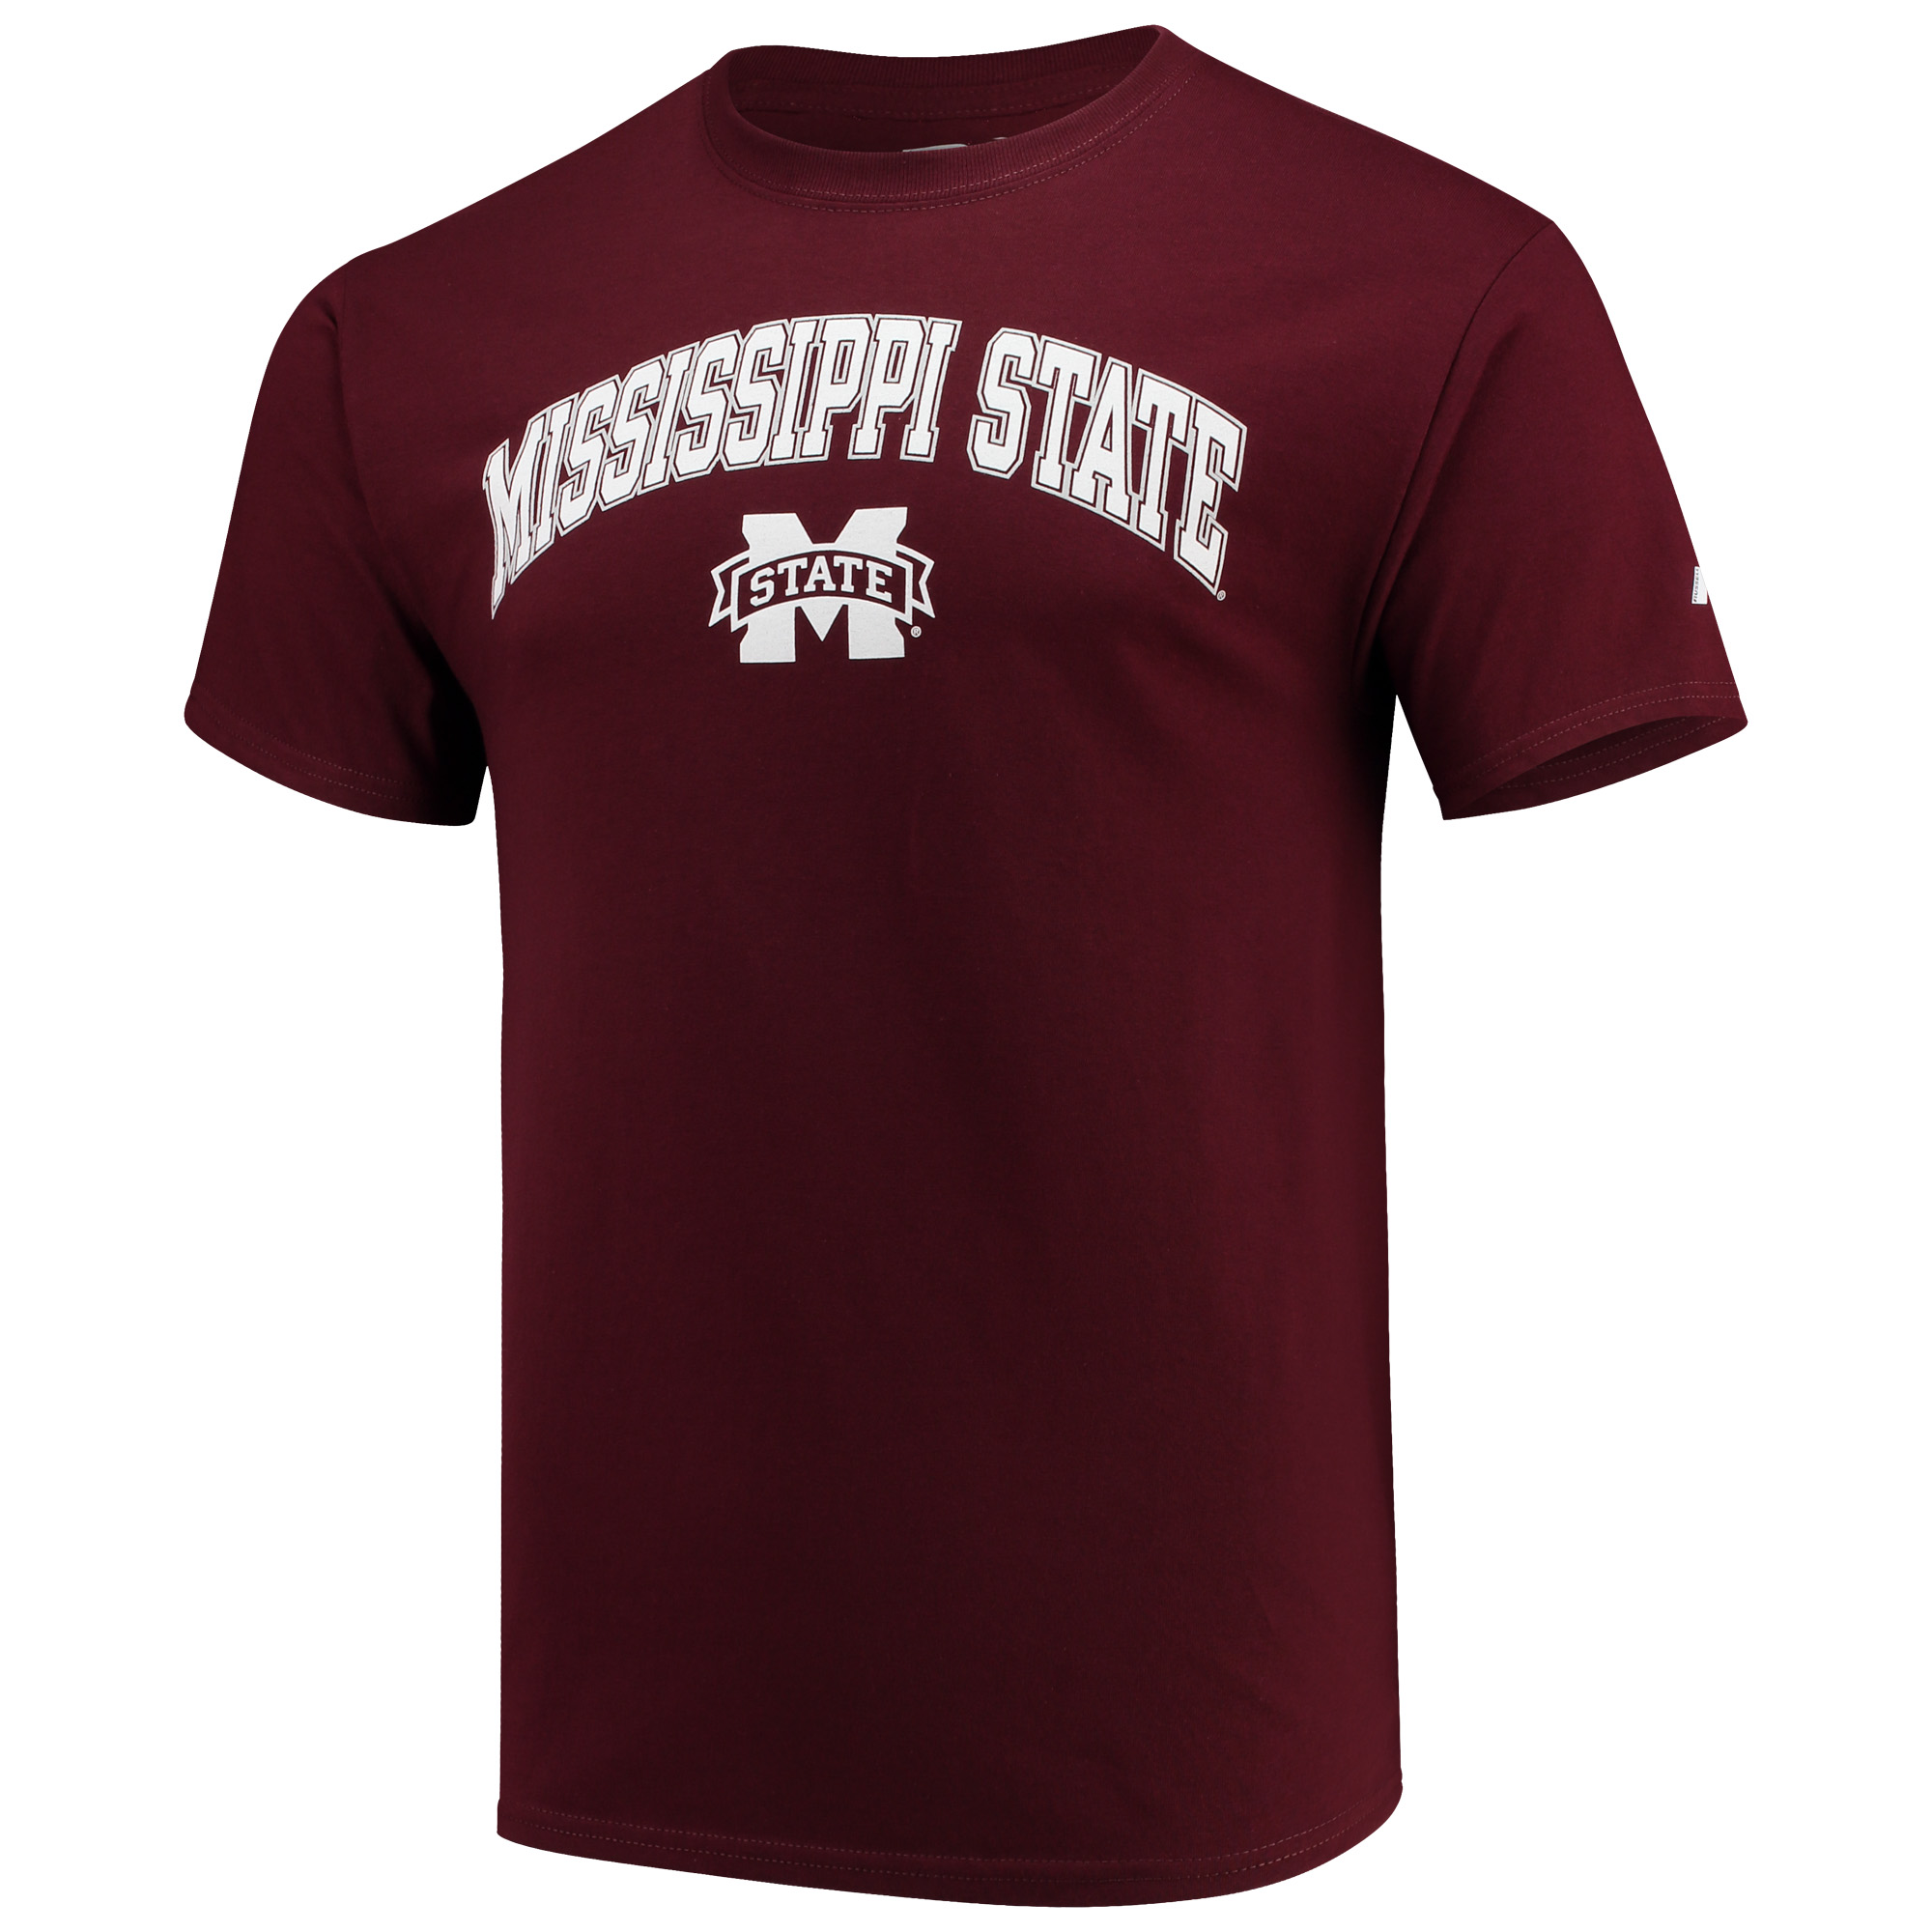 Men's Russell Maroon Mississippi State Bulldogs Core Print T-Shirt